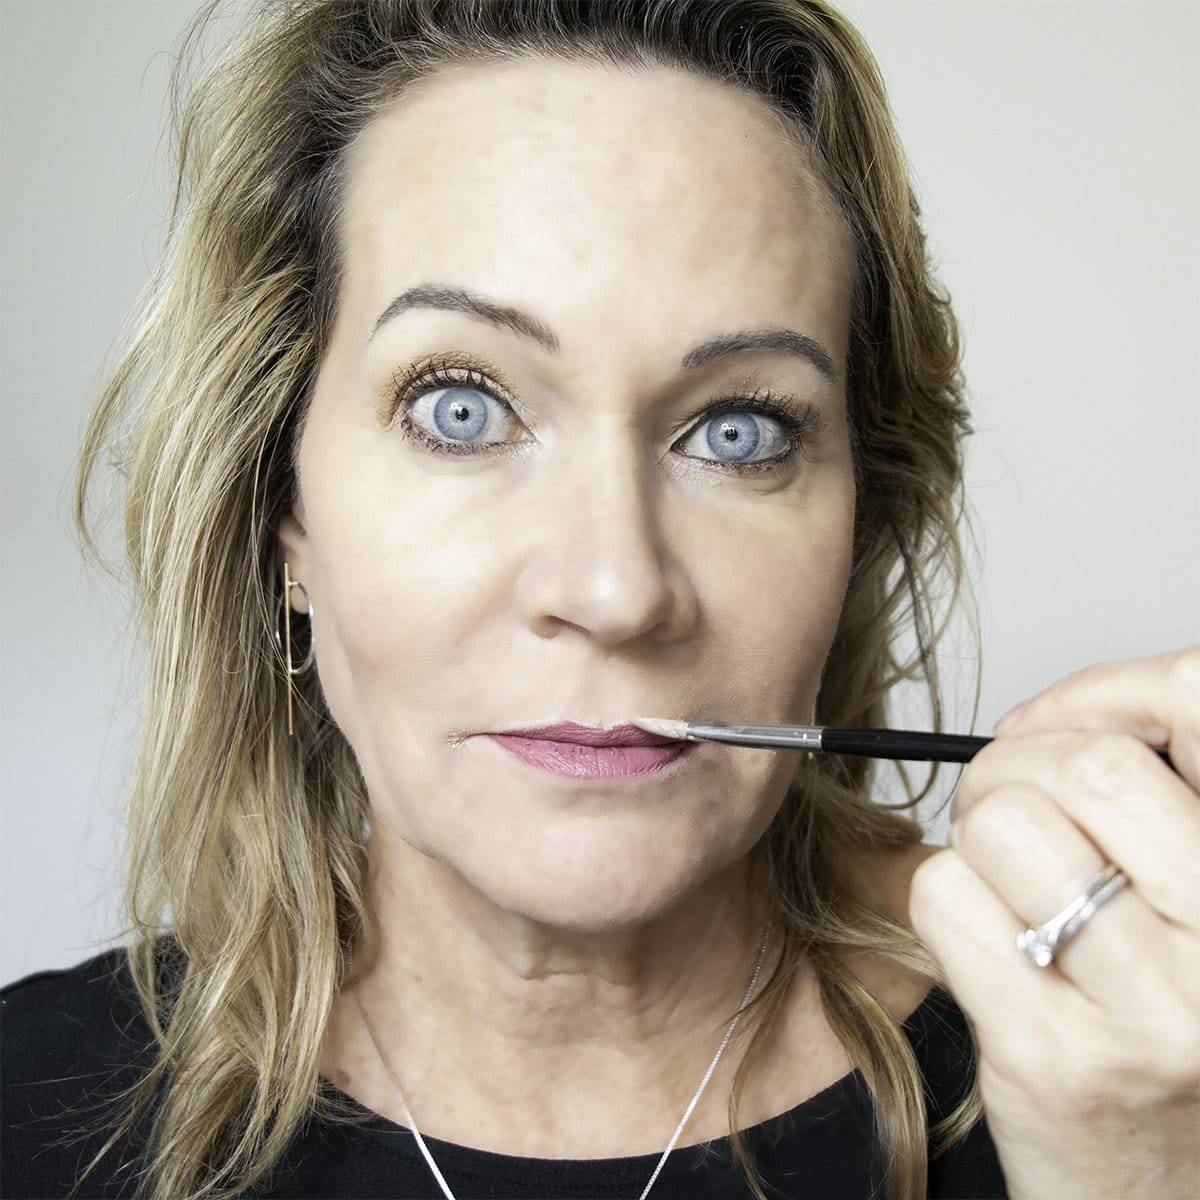 How to Stop Lipstick Bleeding into Lip Wrinkles and Smoker's Lines 17